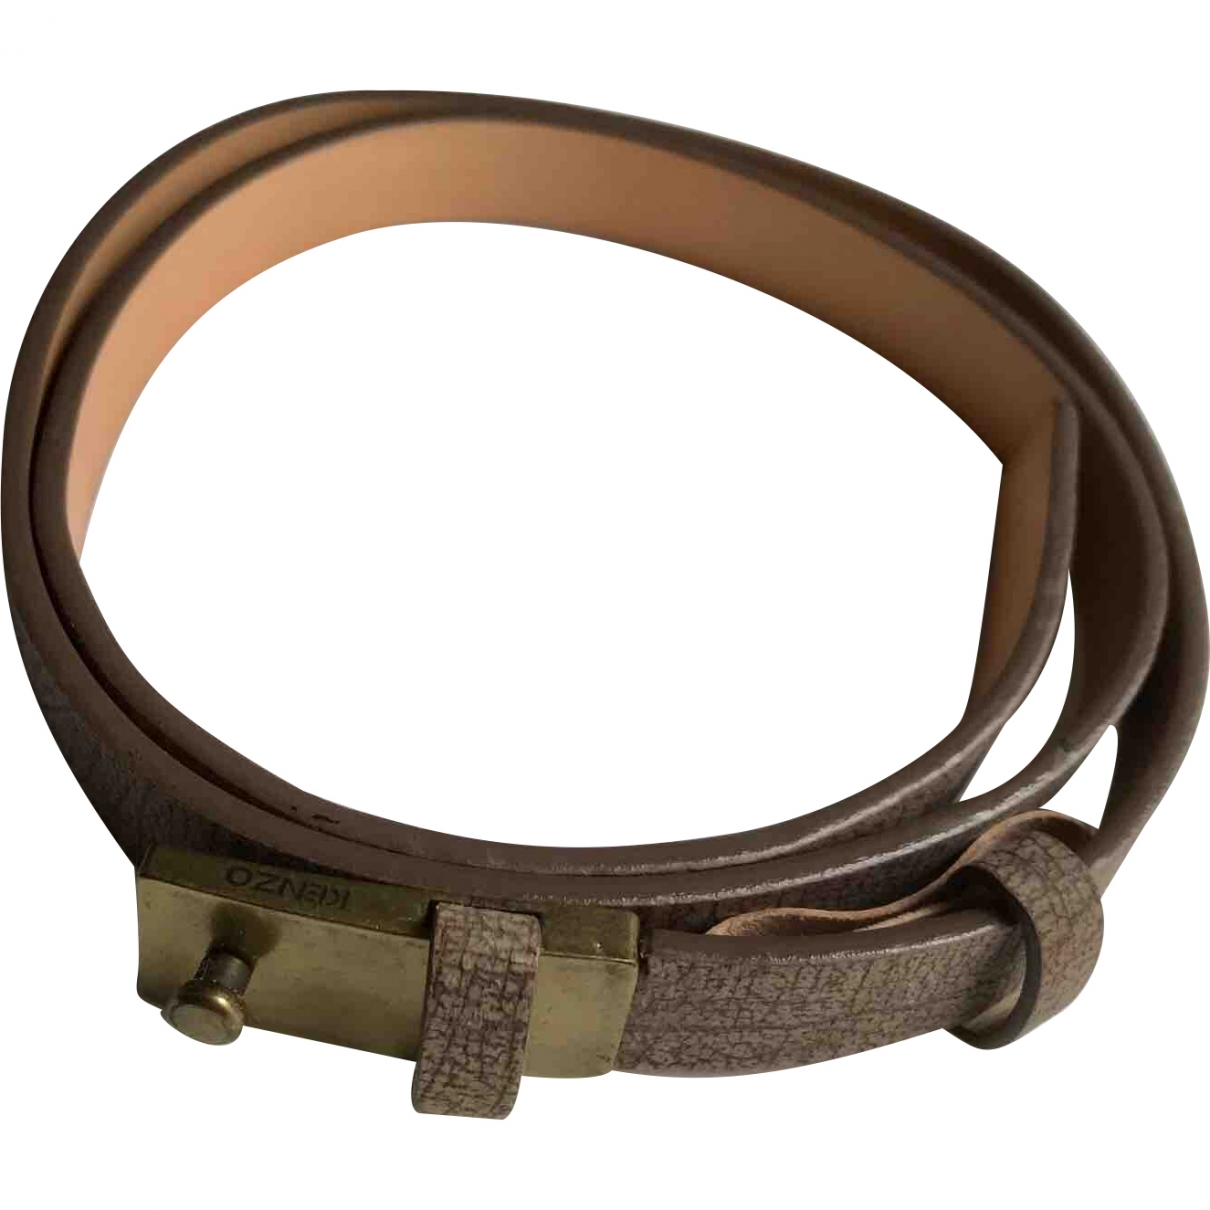 Kenzo \N Beige Leather belt for Men 95 cm